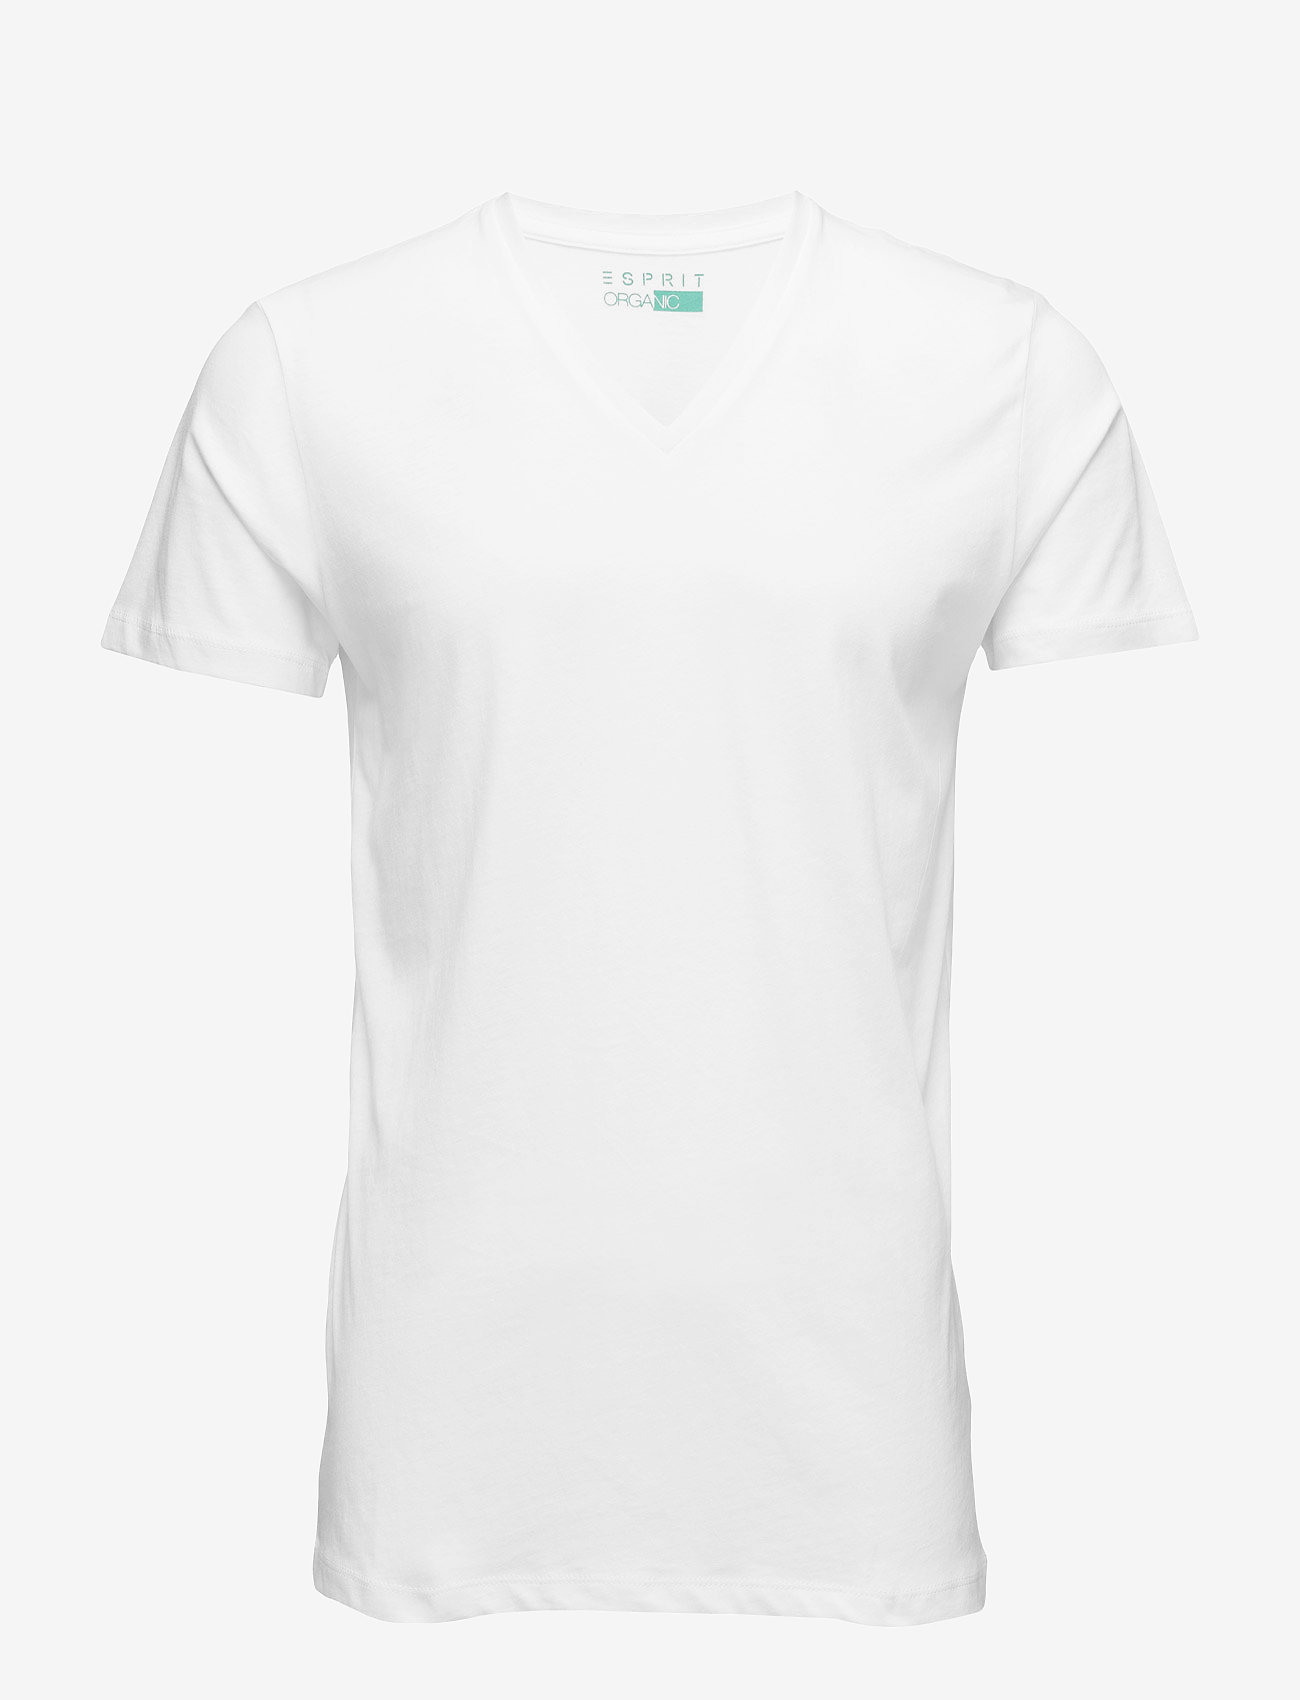 Esprit Casual - T-Shirts - short-sleeved t-shirts - white - 0